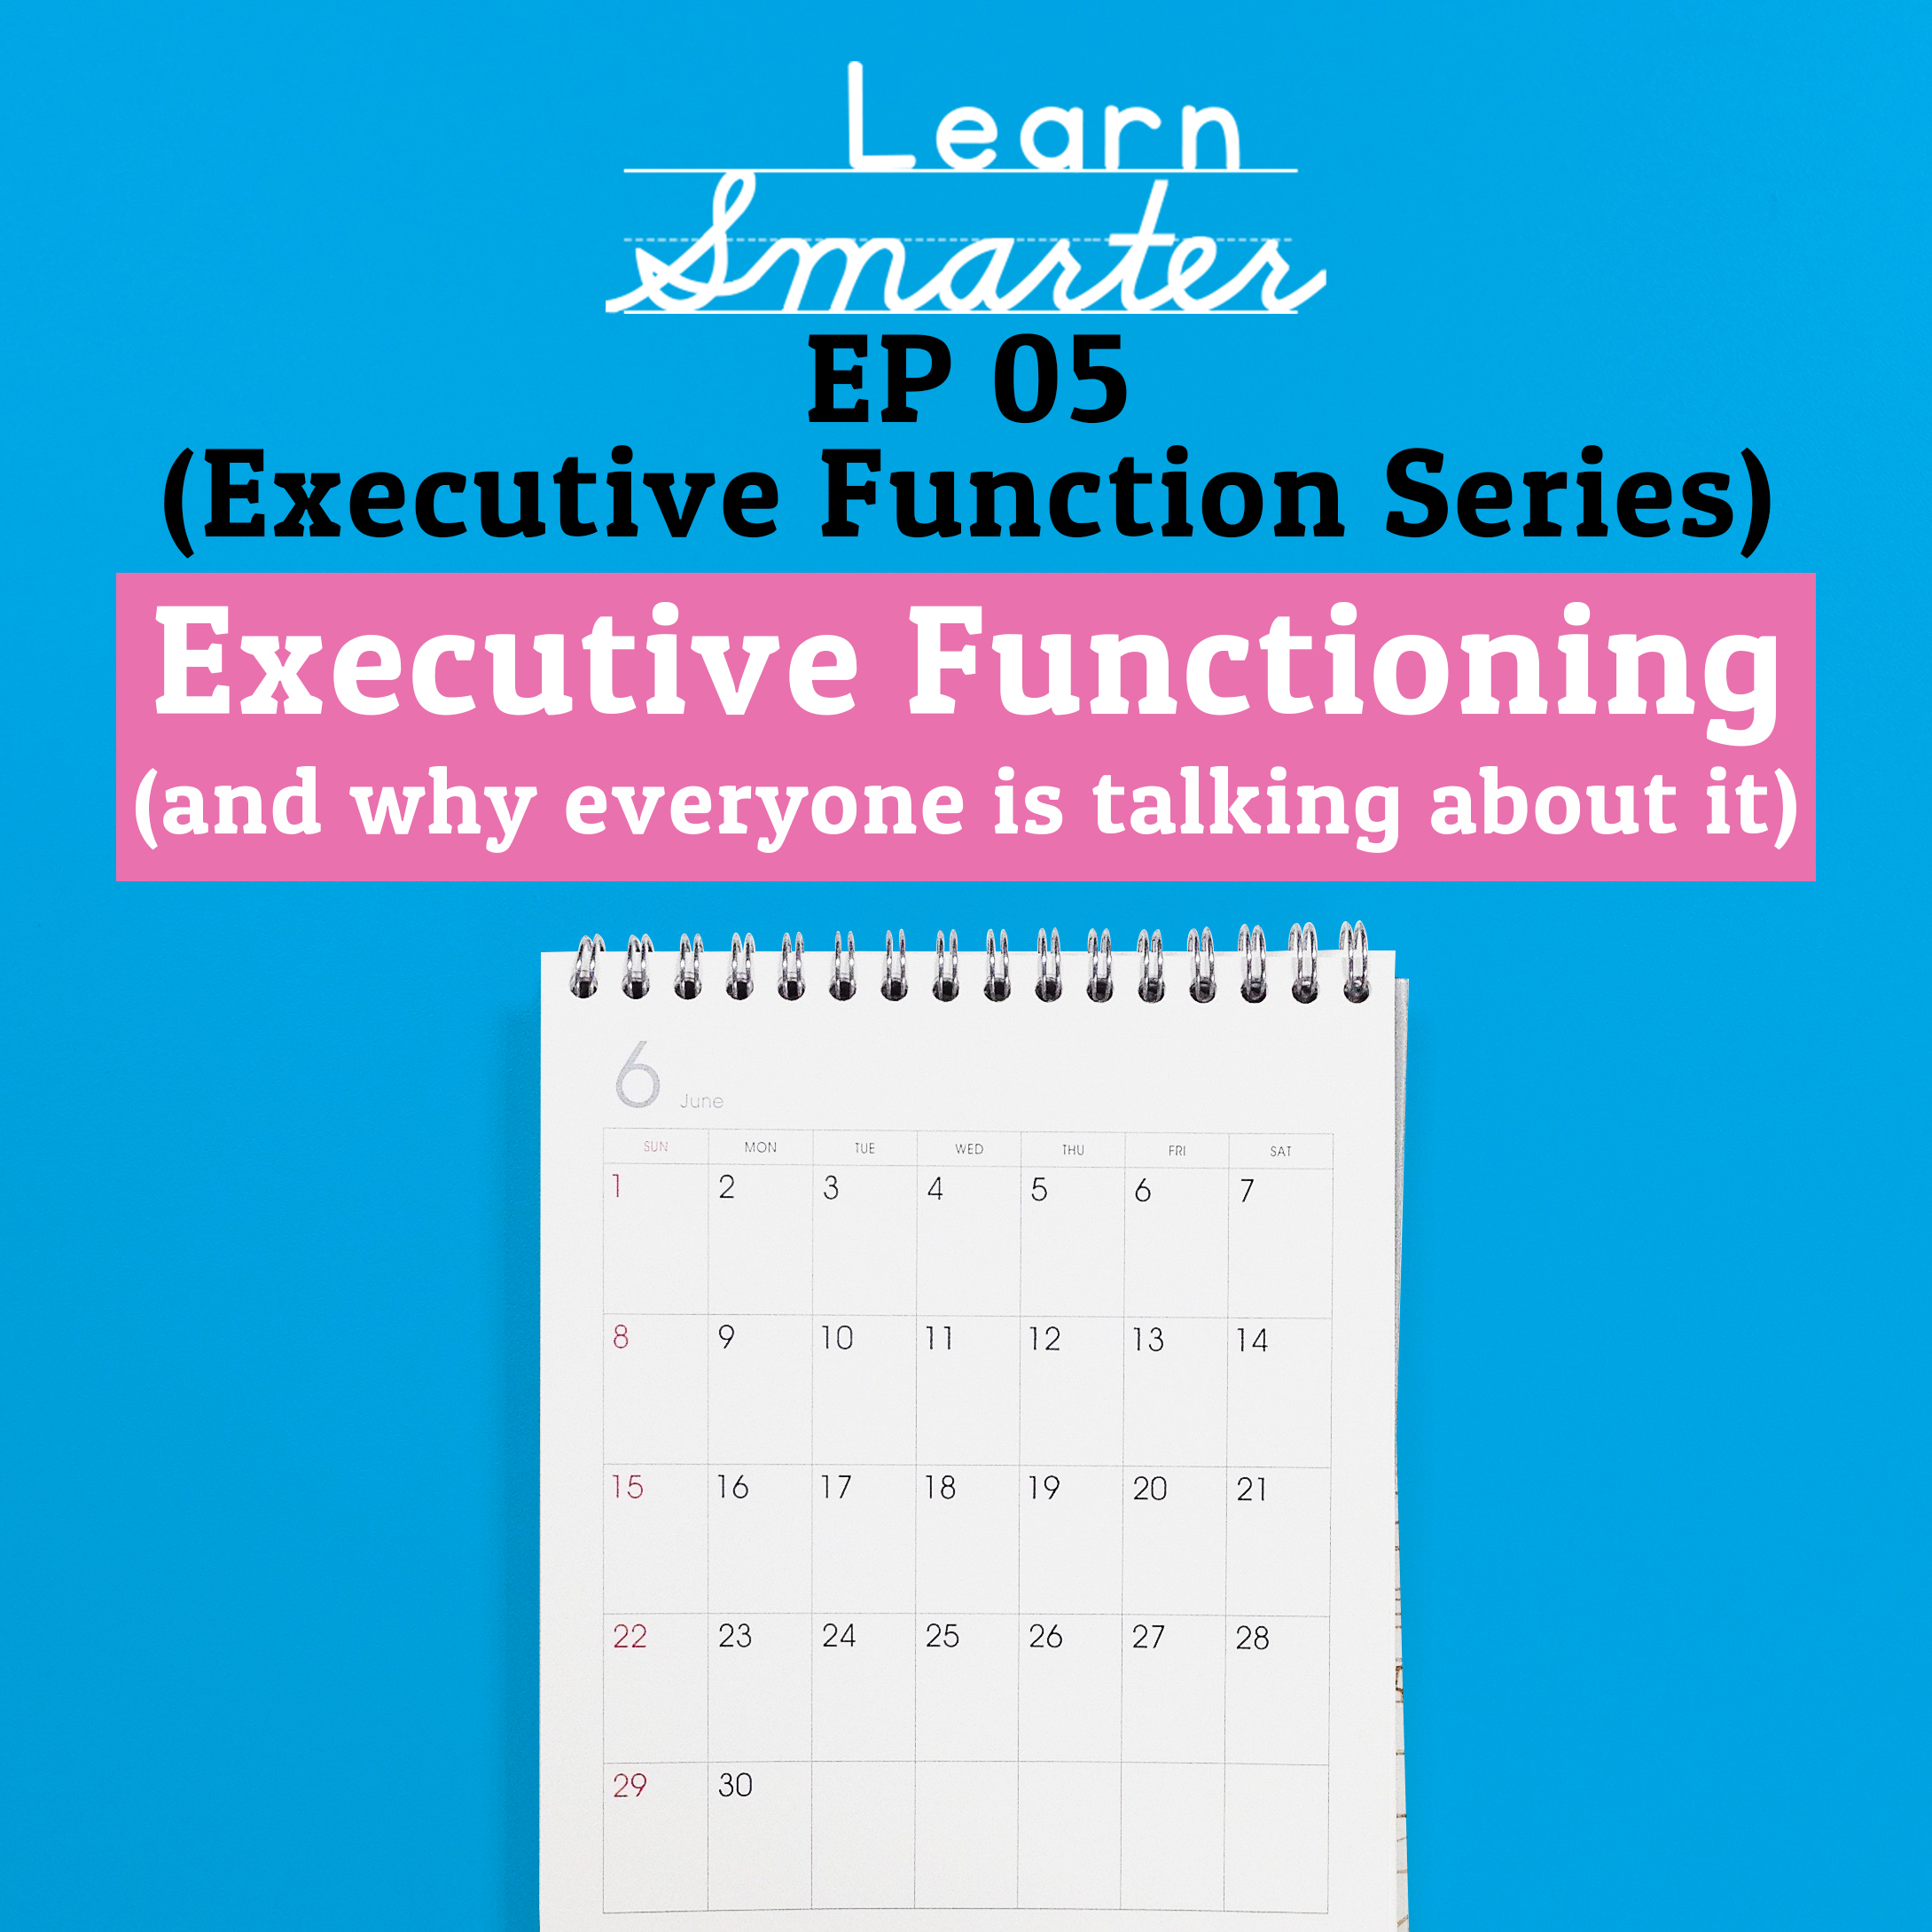 Ep 05: Executive Functioning (and why everyone is talking about it)